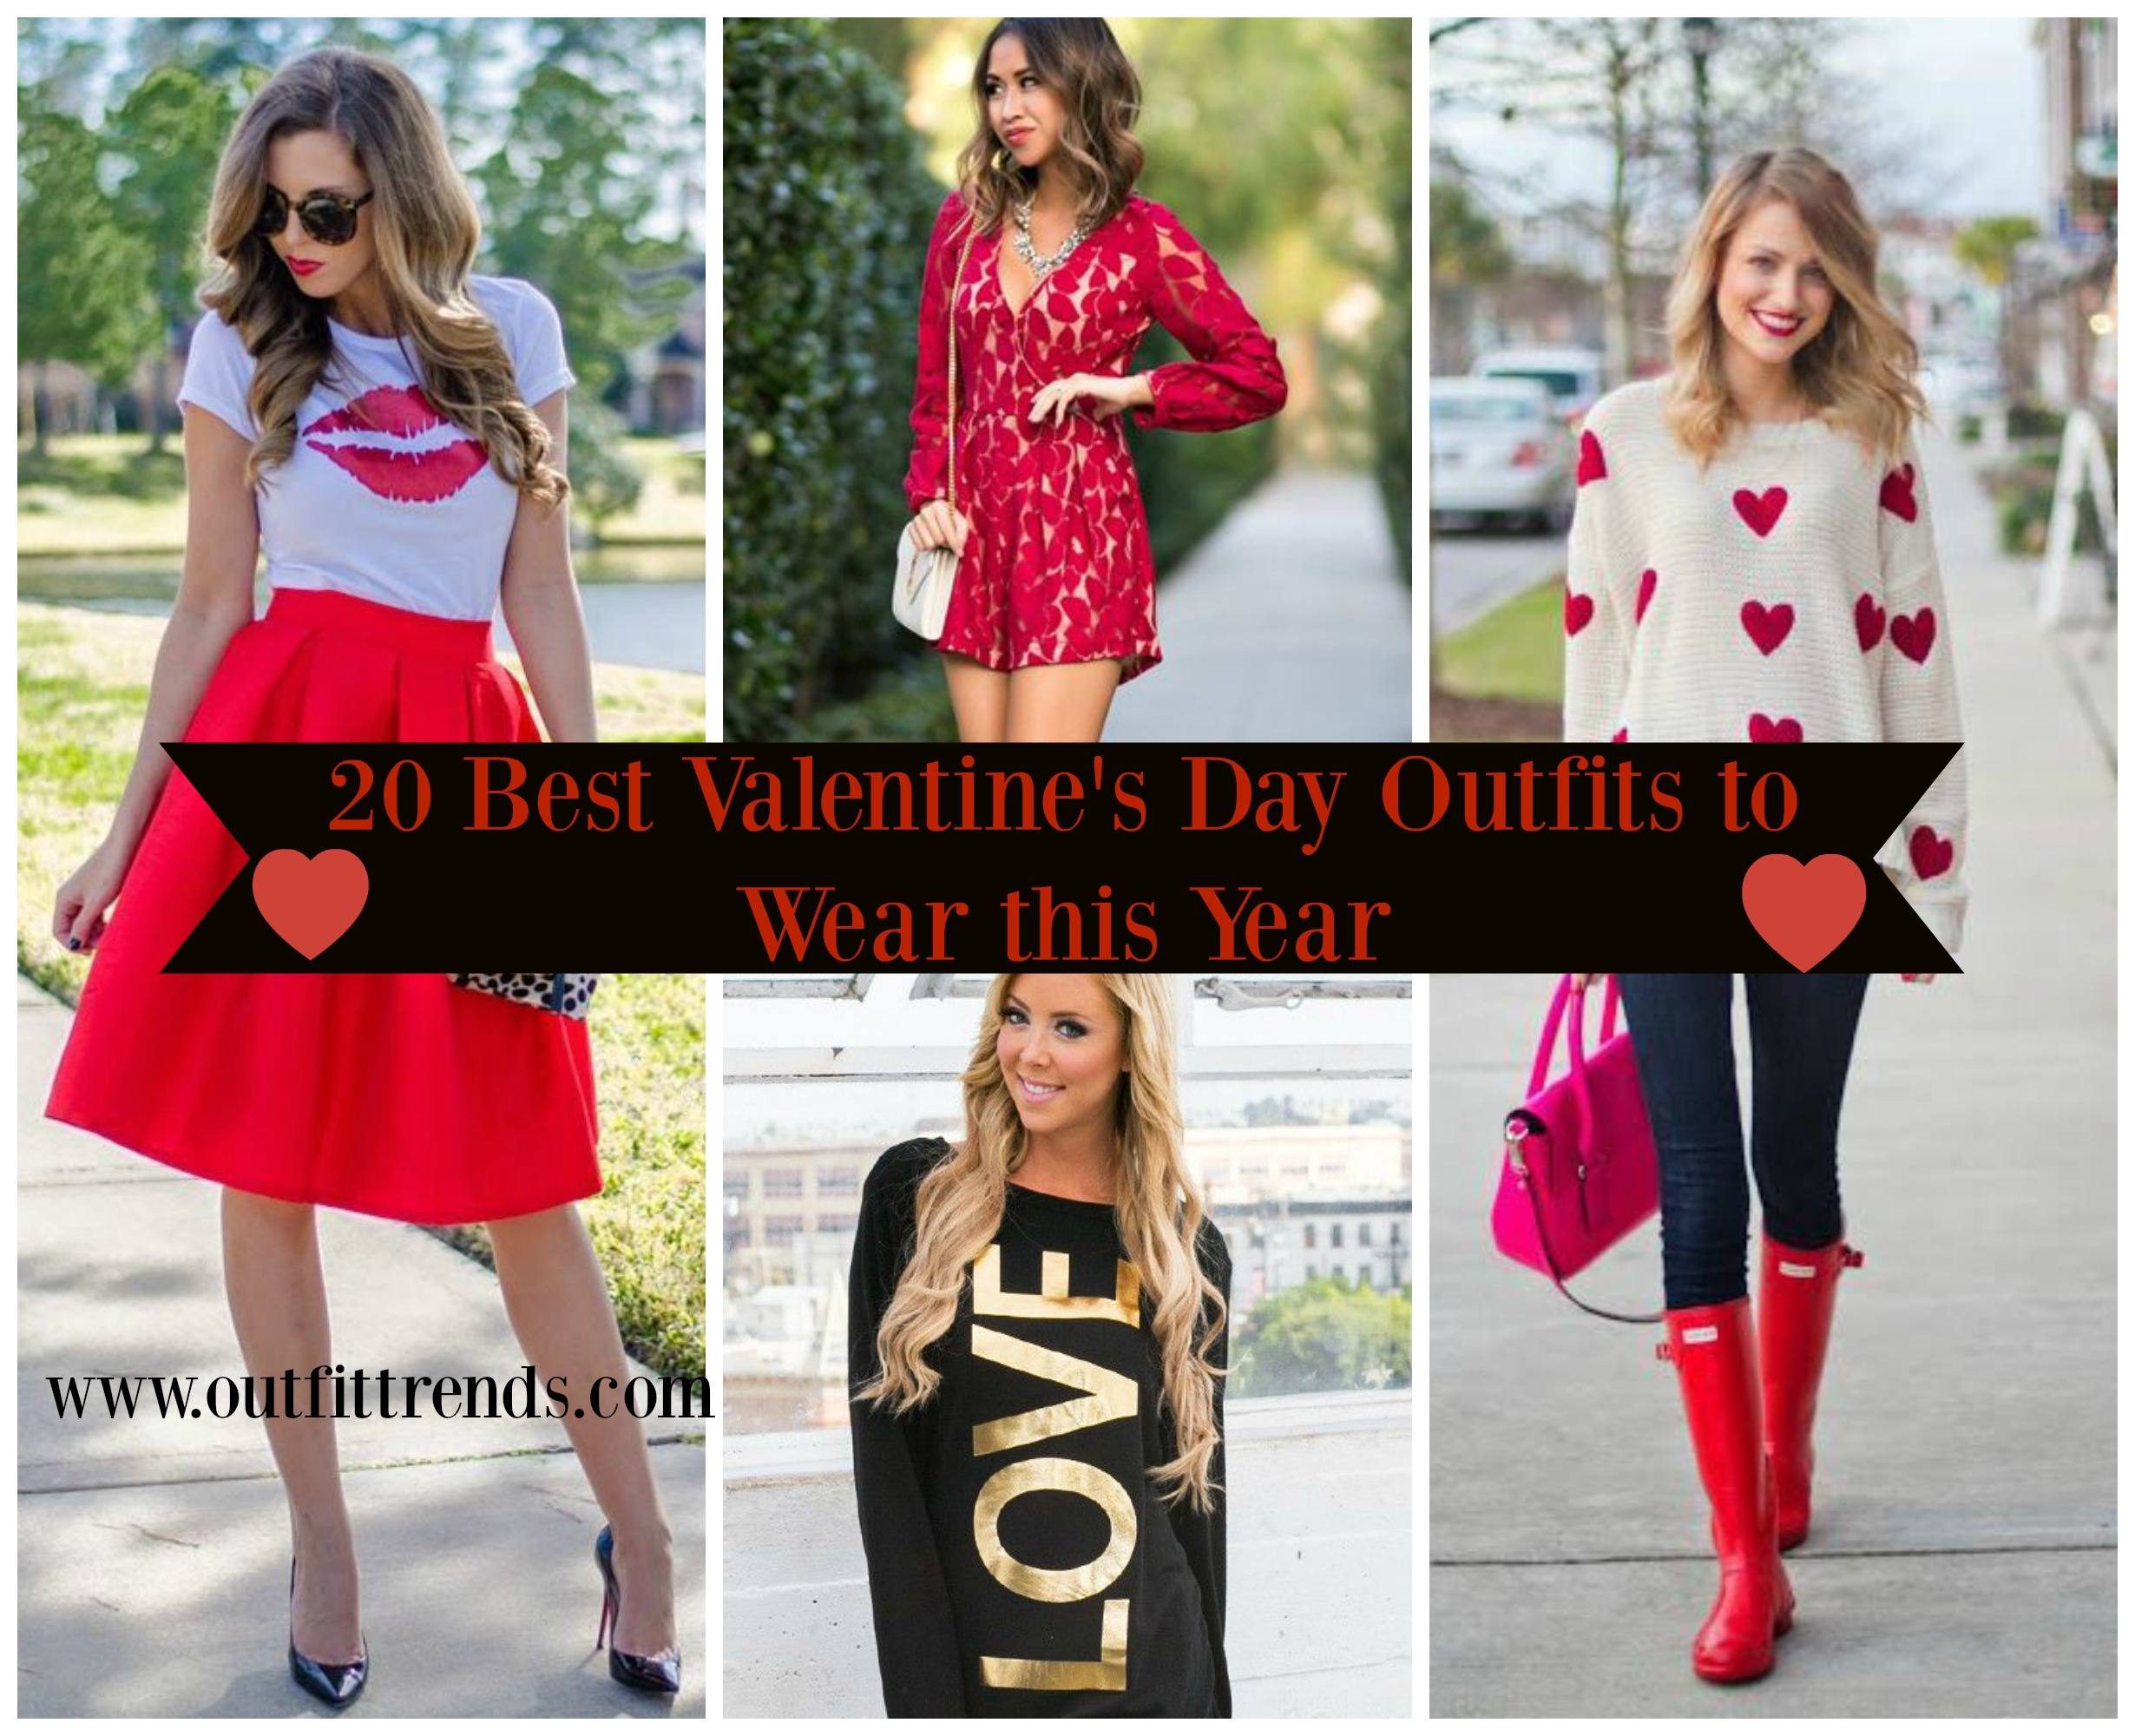 Outfits 2017 Top 20 Amazing Outfits Ideas For Valentine S Day 2017 Cheap